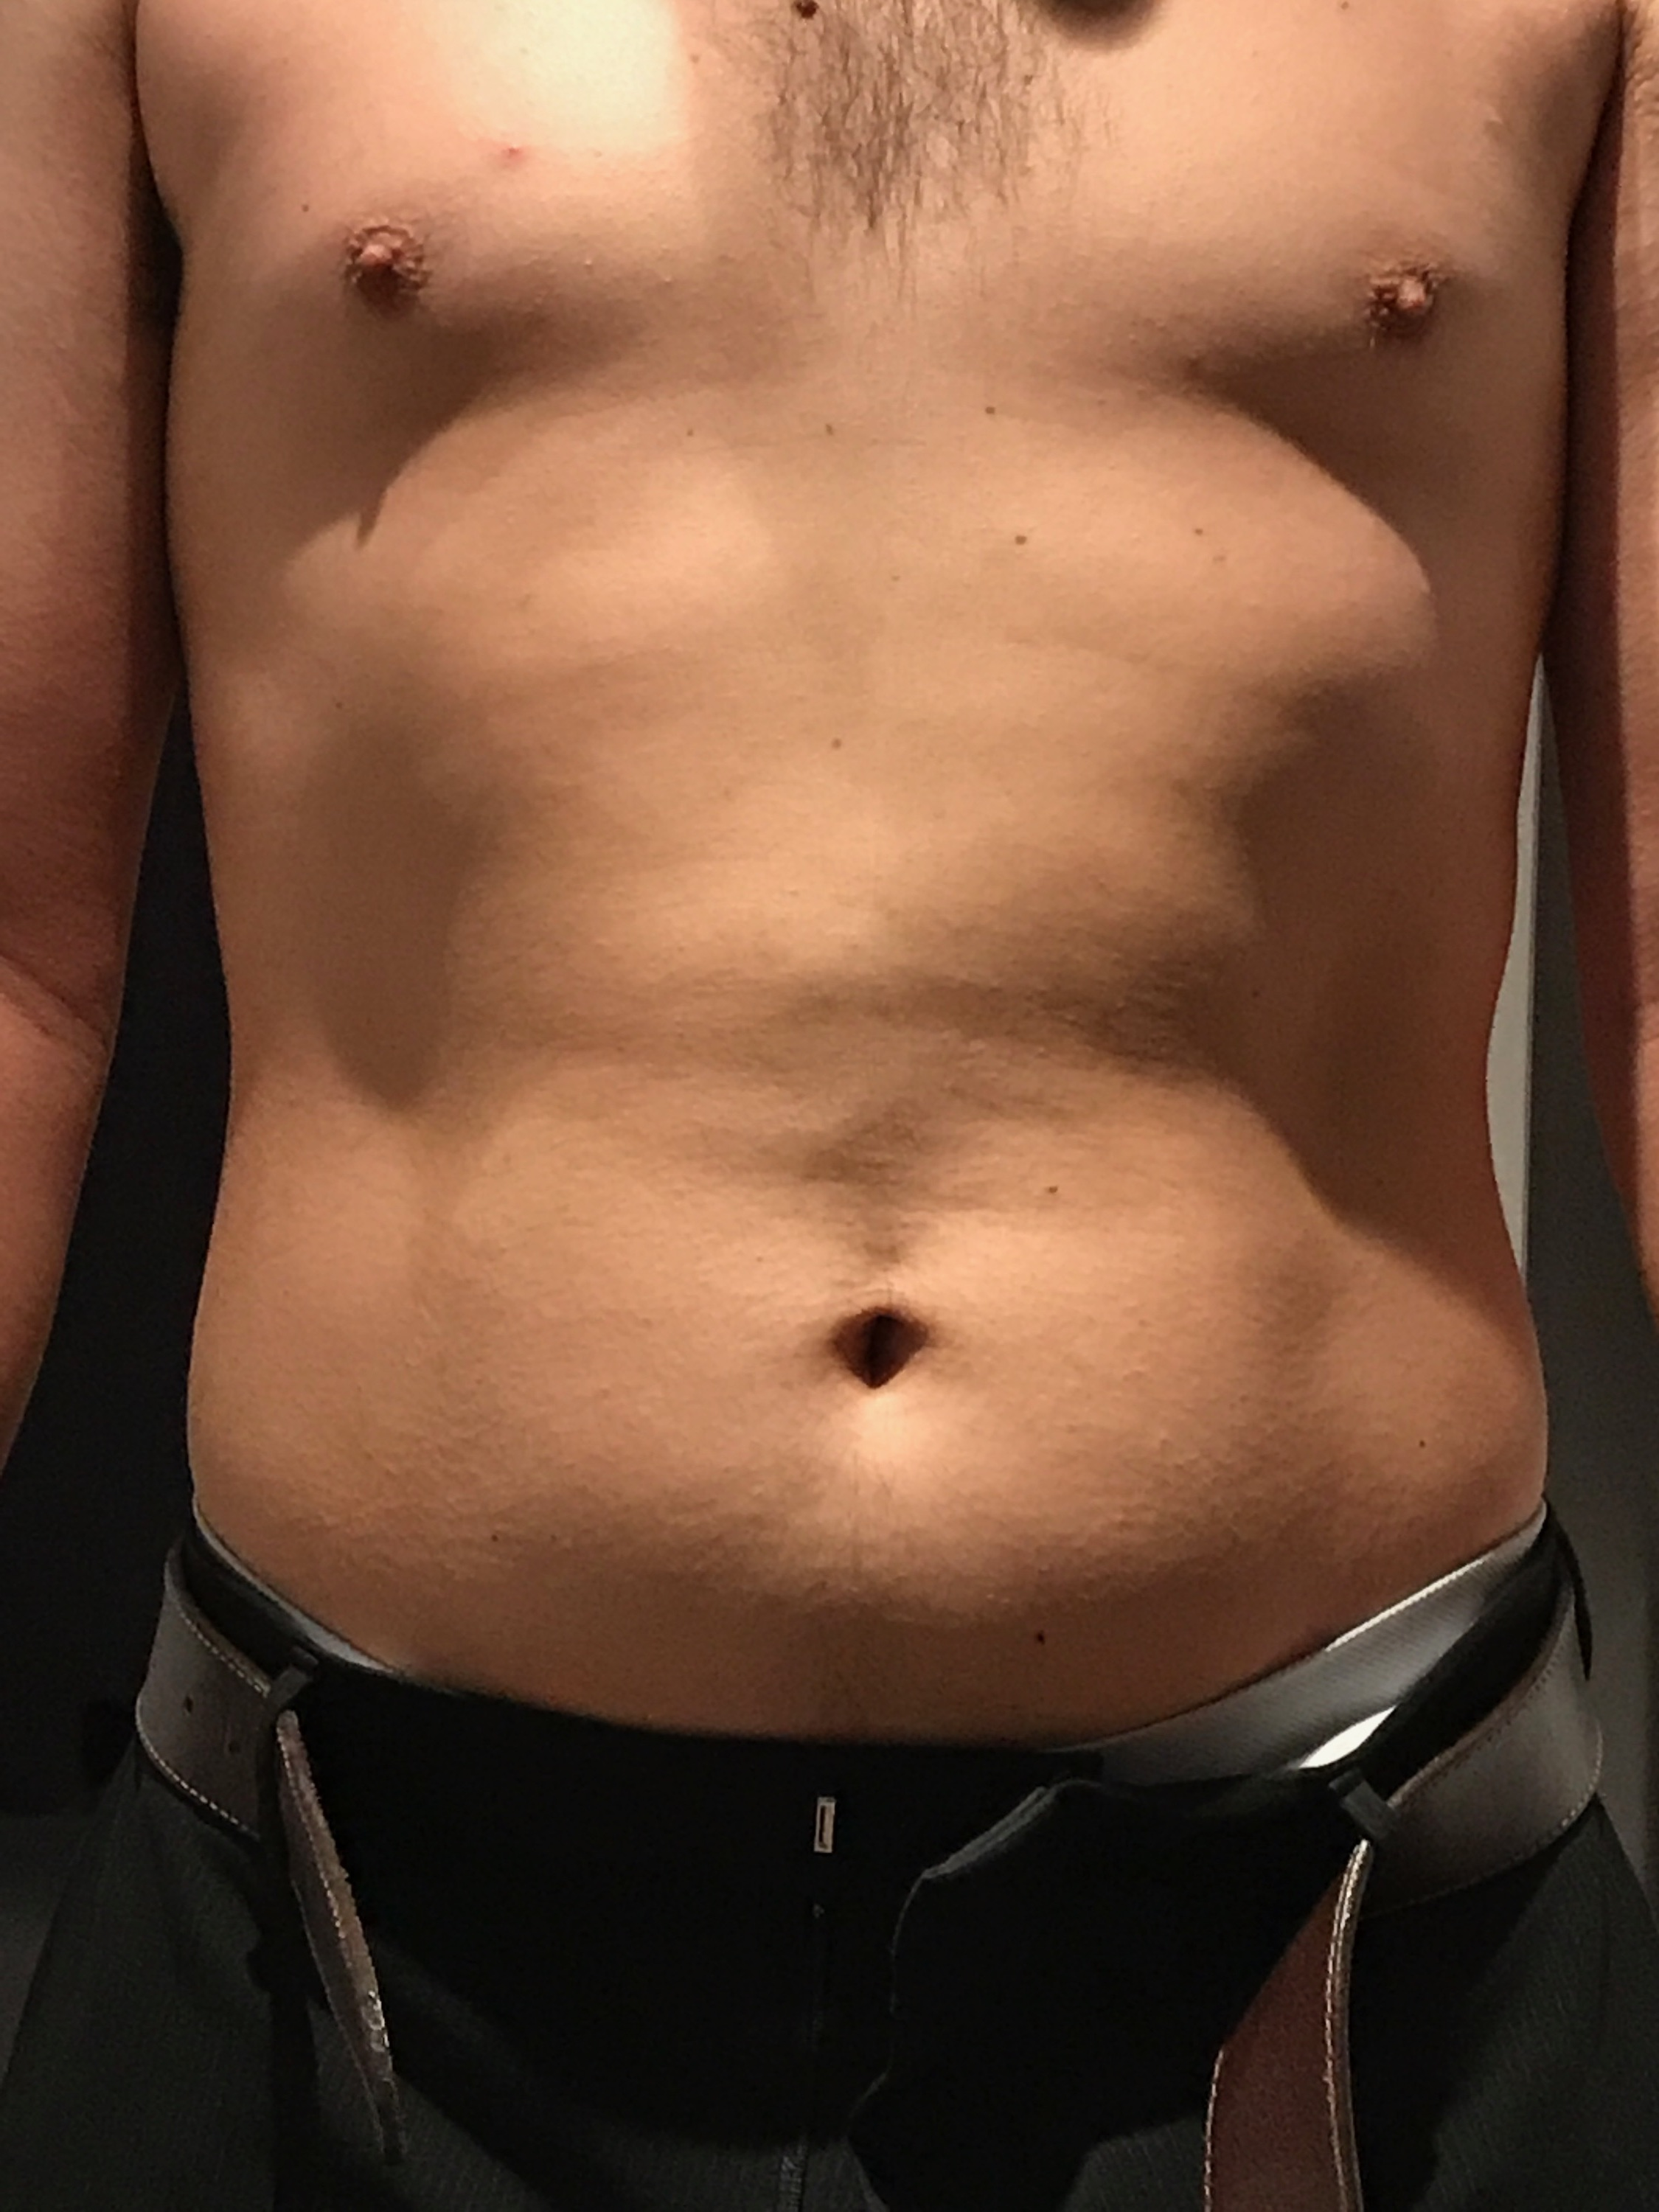 Dent In Stomach : stomach, Belly, Dents!, Non-Scale, Victories, Ketogenic, Forums